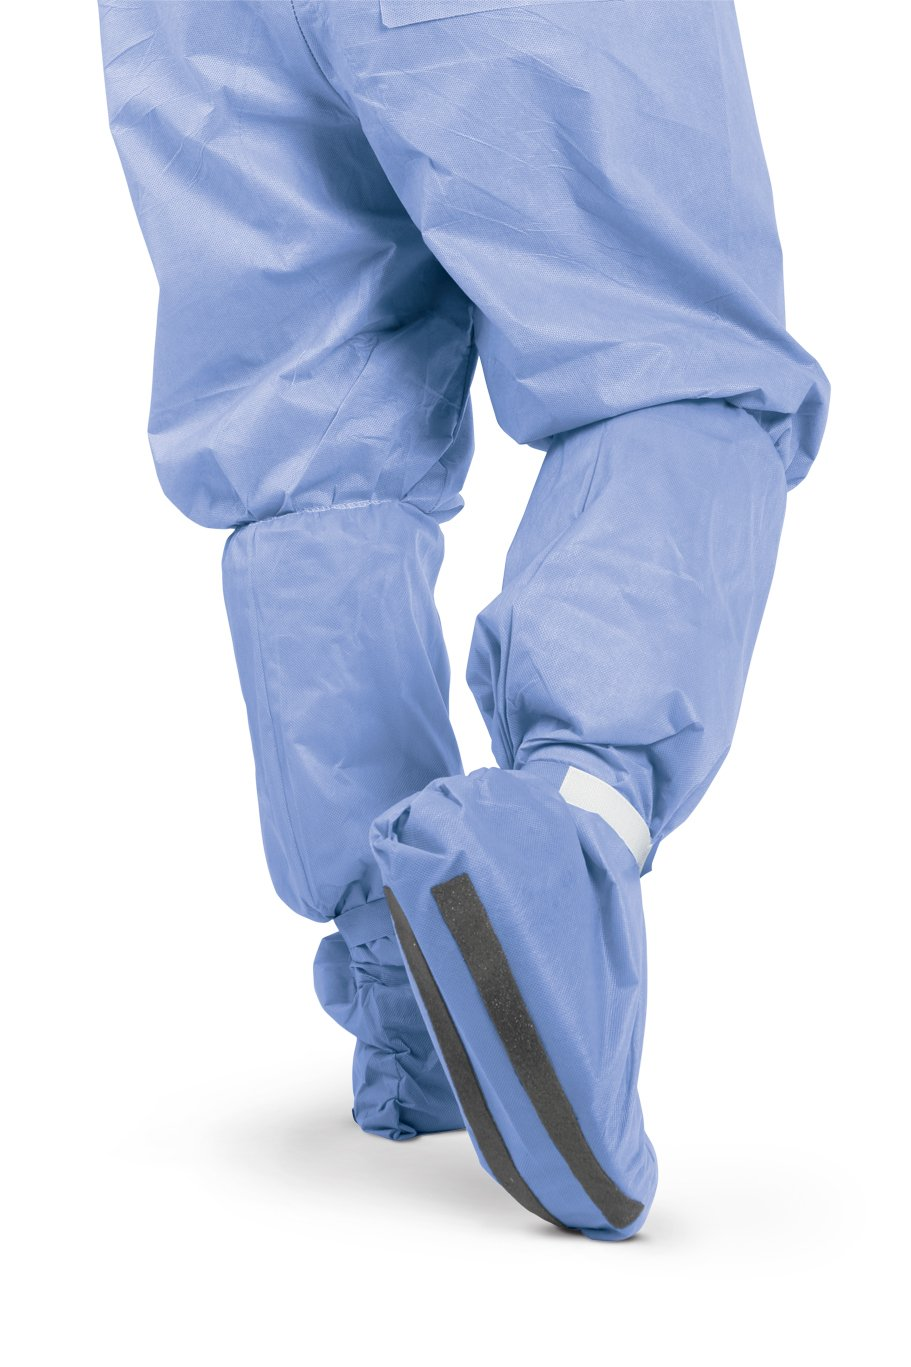 Medline NON27348P Prevention Plus Impervious Breathable Boot Covers, Latex Free, Regular/Large, Blue (Pack of 150)